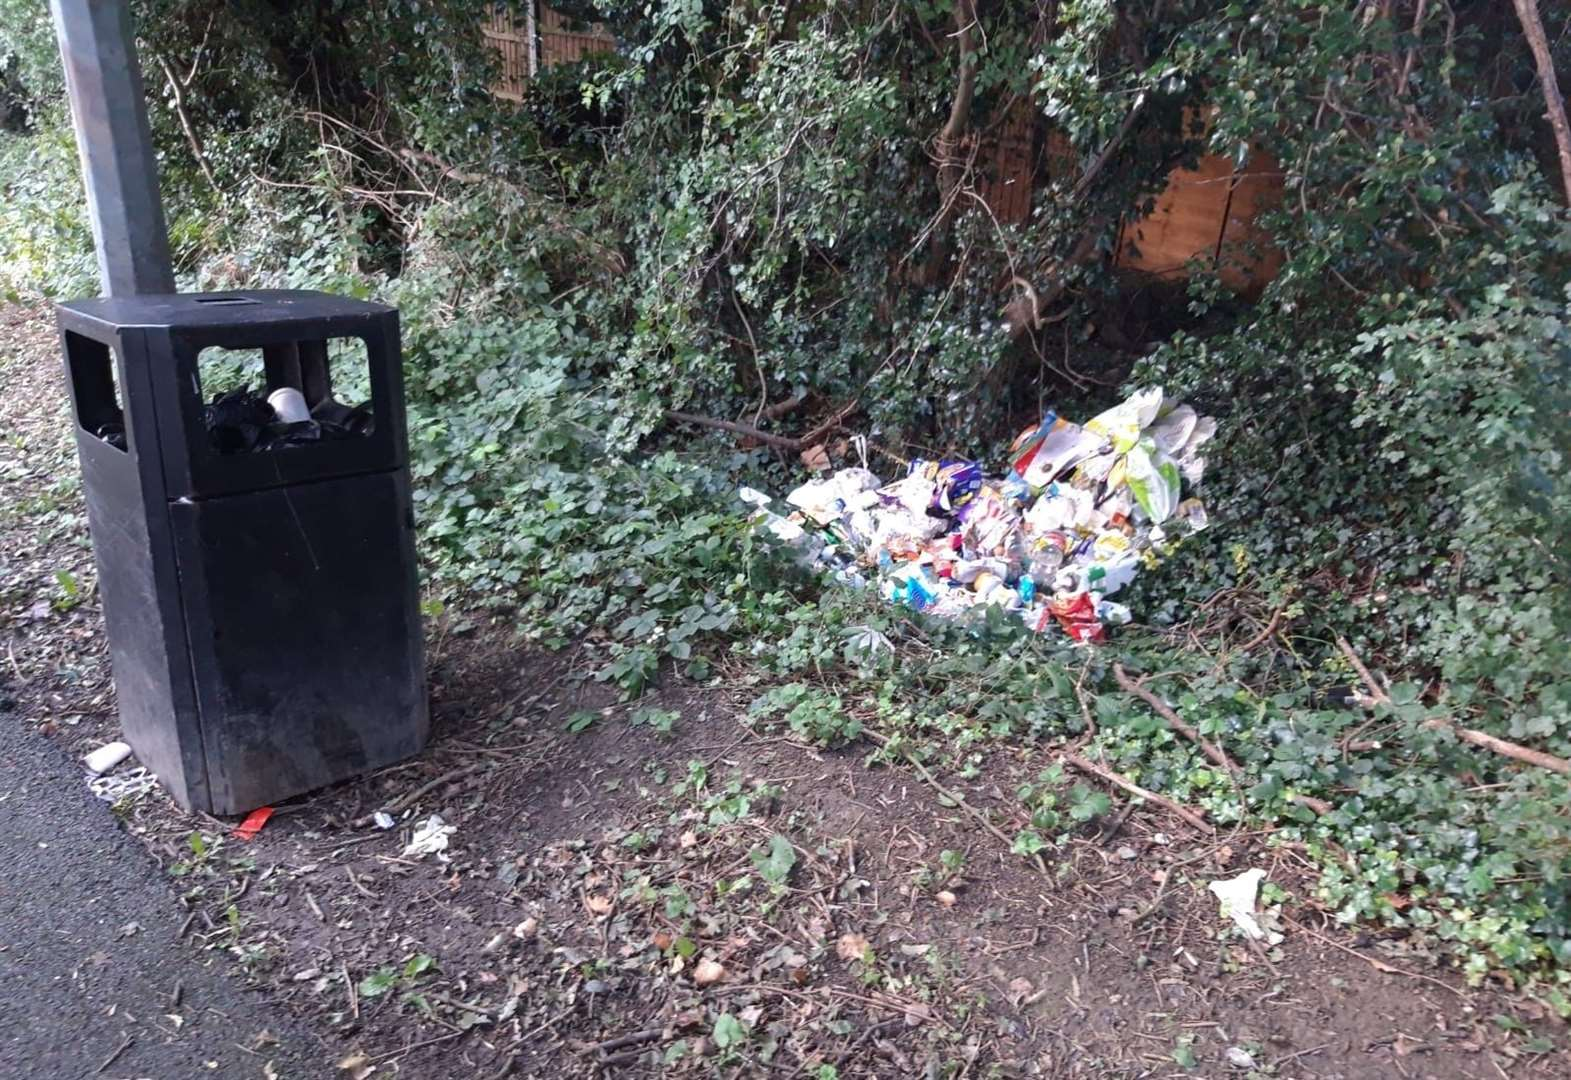 Resident disgusted after finding household rubbish dumped in lane